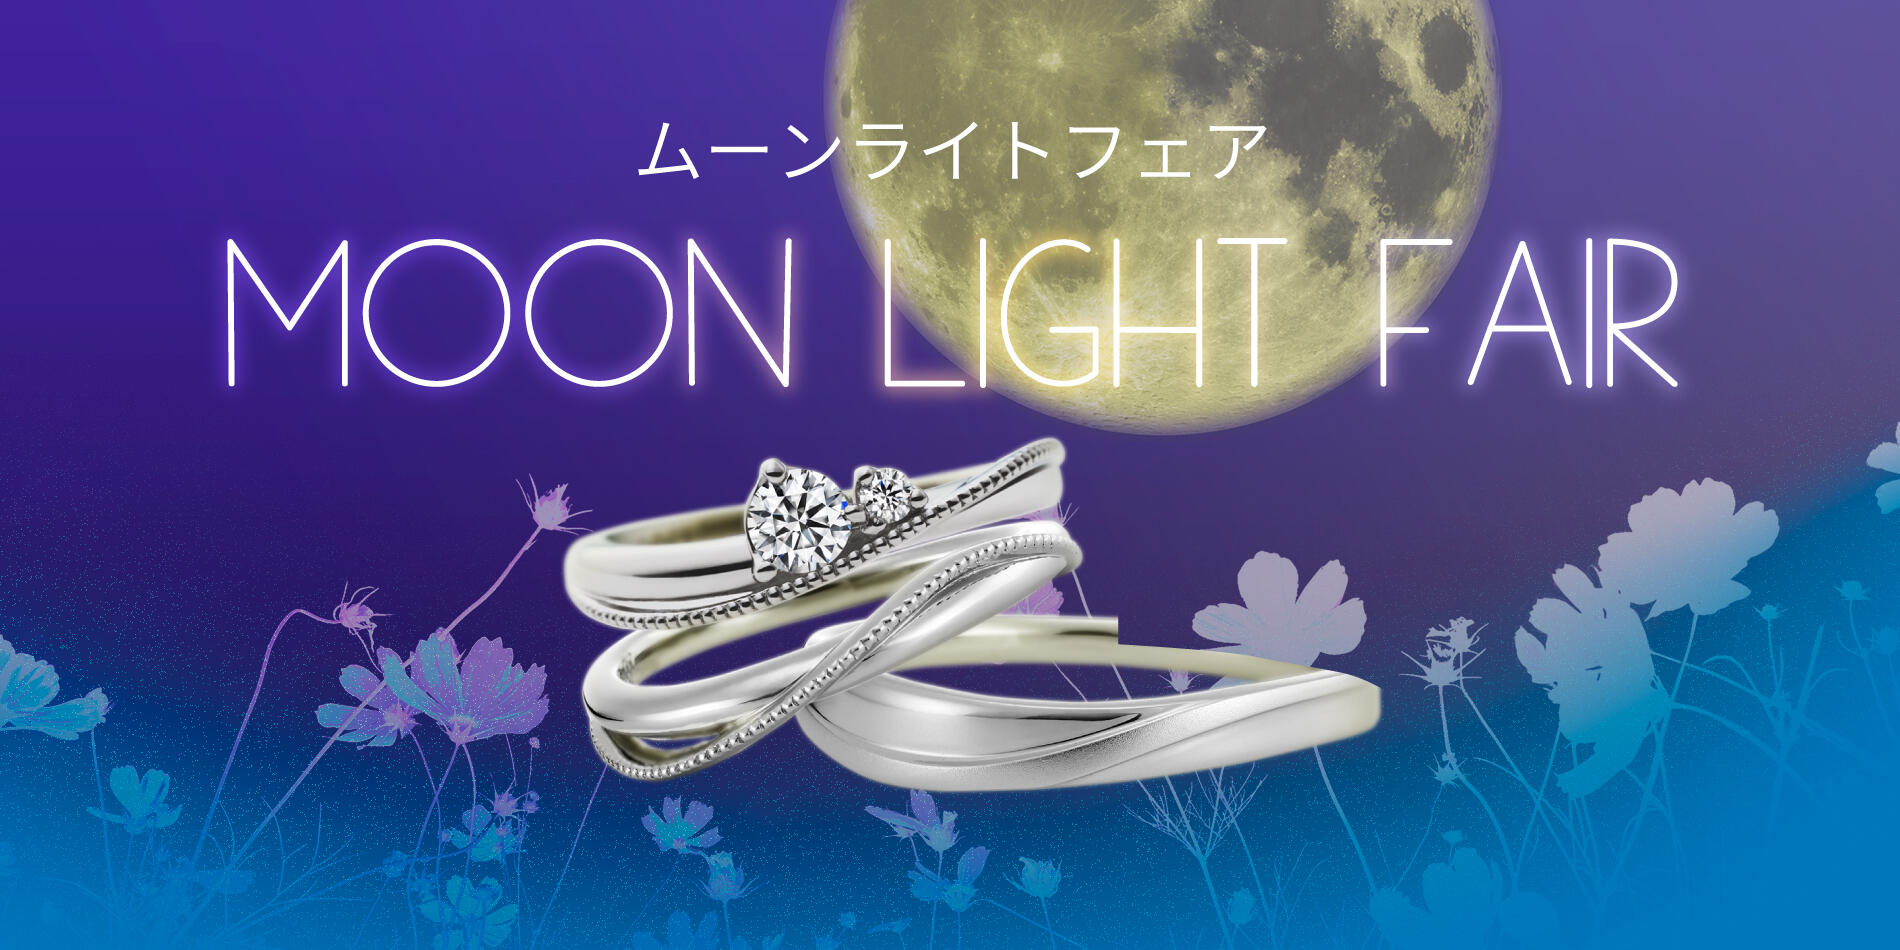 「Moonlight Fair」開催